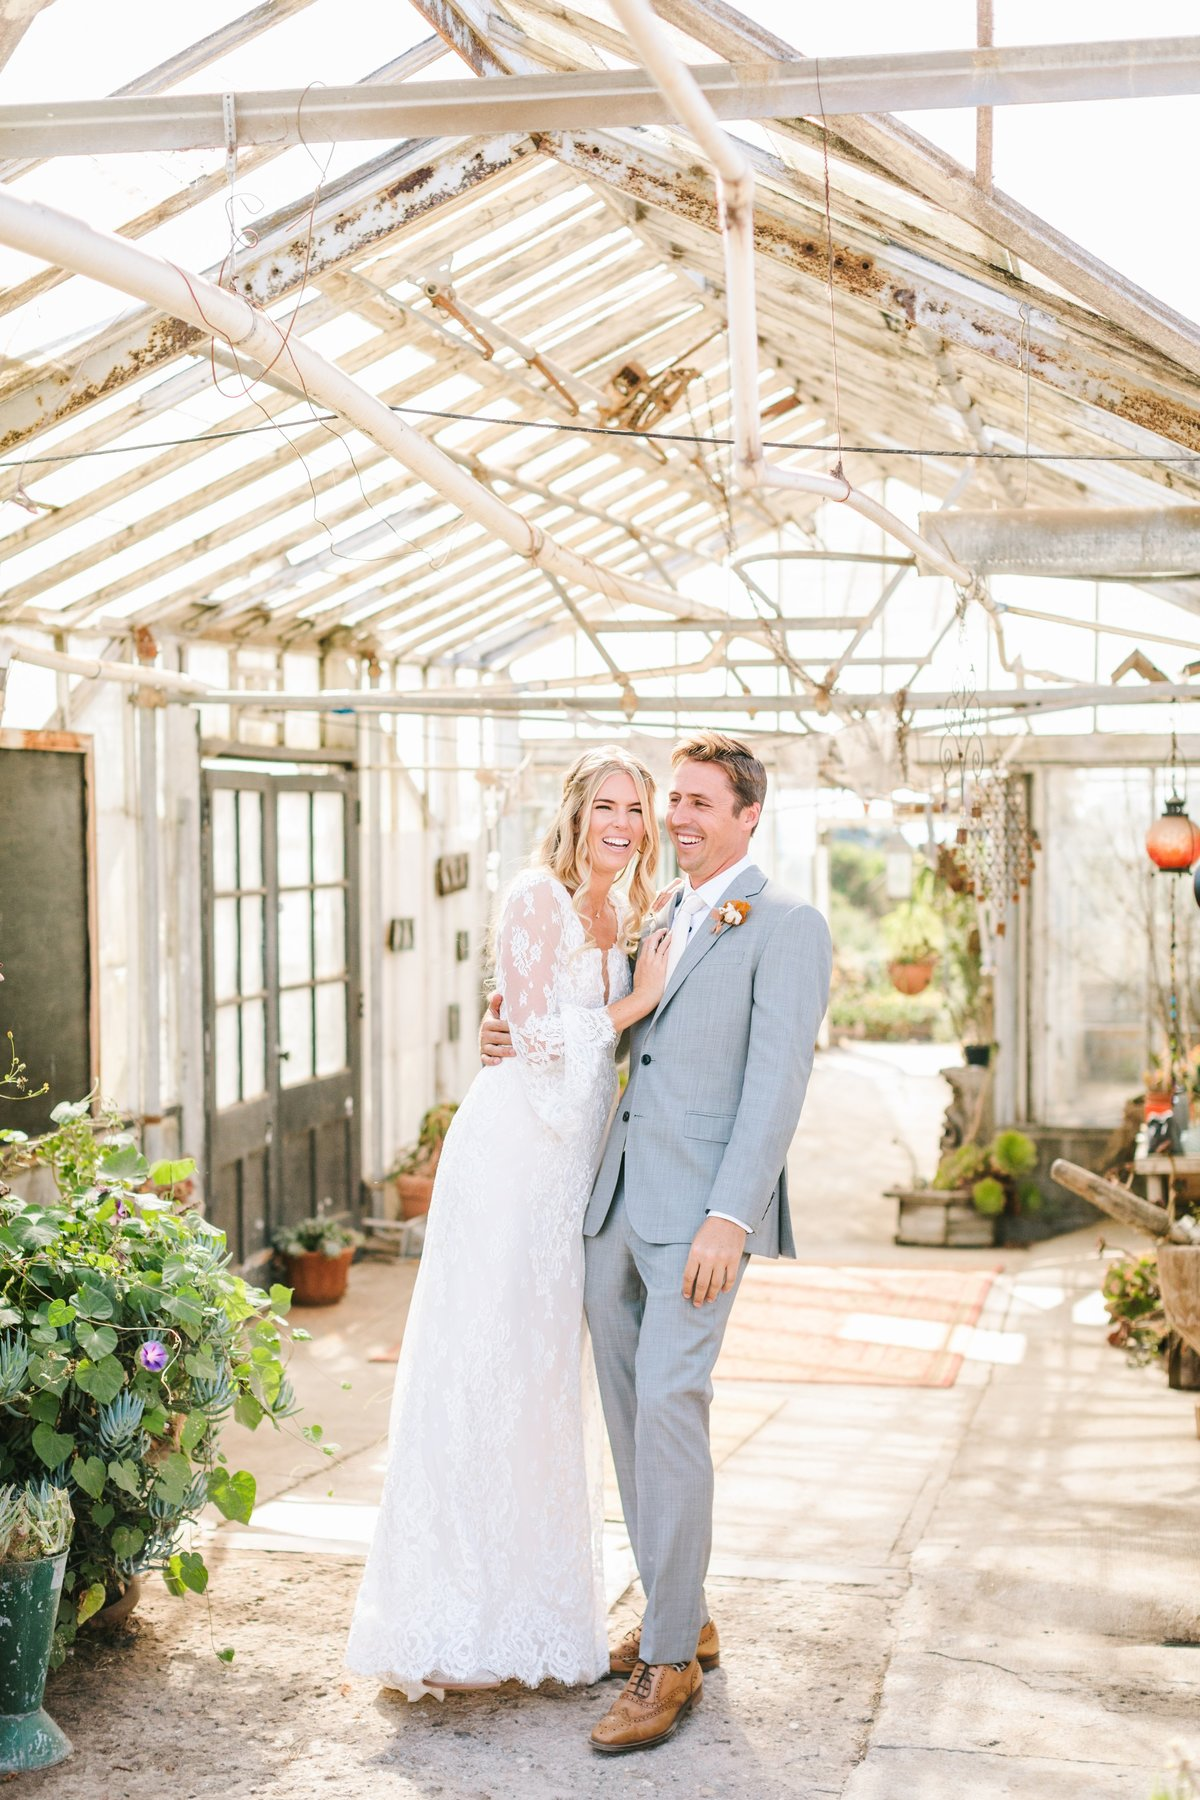 Best California Wedding Photographer-Jodee Debes Photography-386